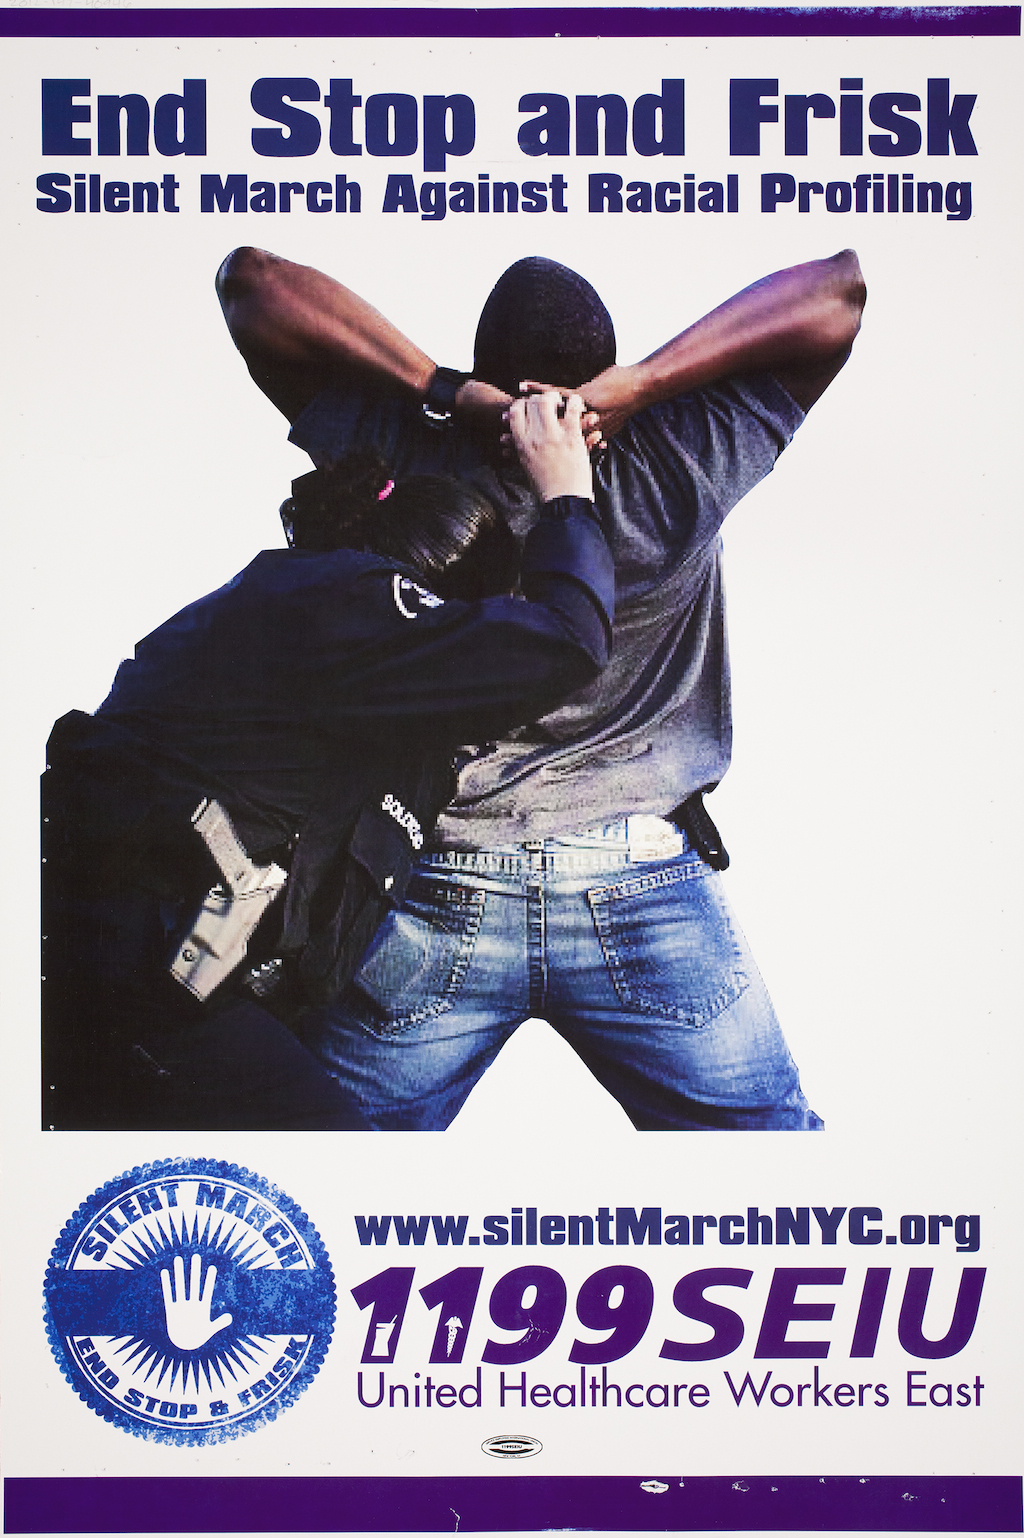 End Stop and Frisk